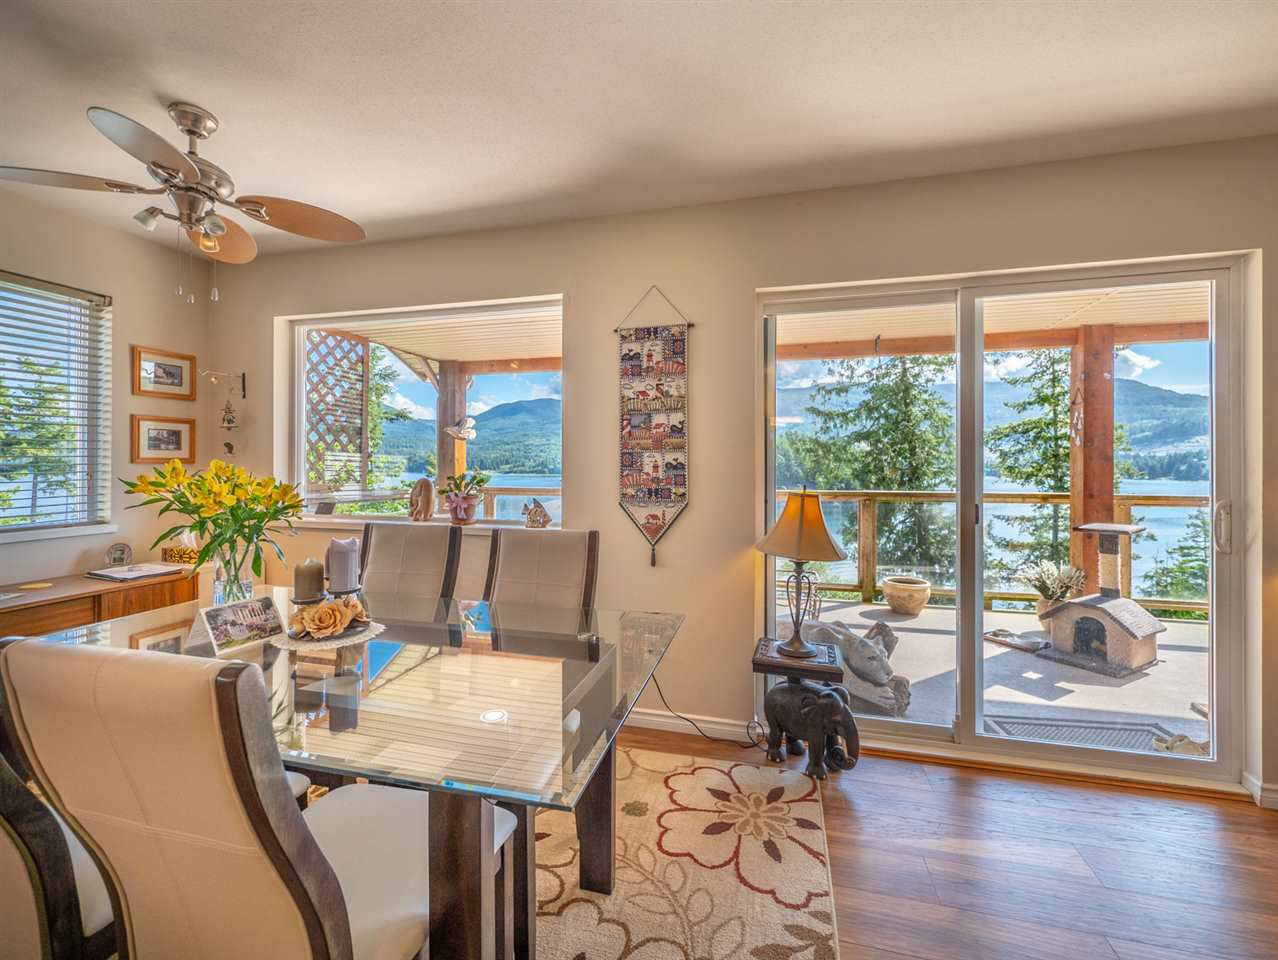 "Photo 4: Photos: 6148 POISE ISLAND Drive in Sechelt: Sechelt District House for sale in ""POISE ISLAND"" (Sunshine Coast)  : MLS®# R2426642"